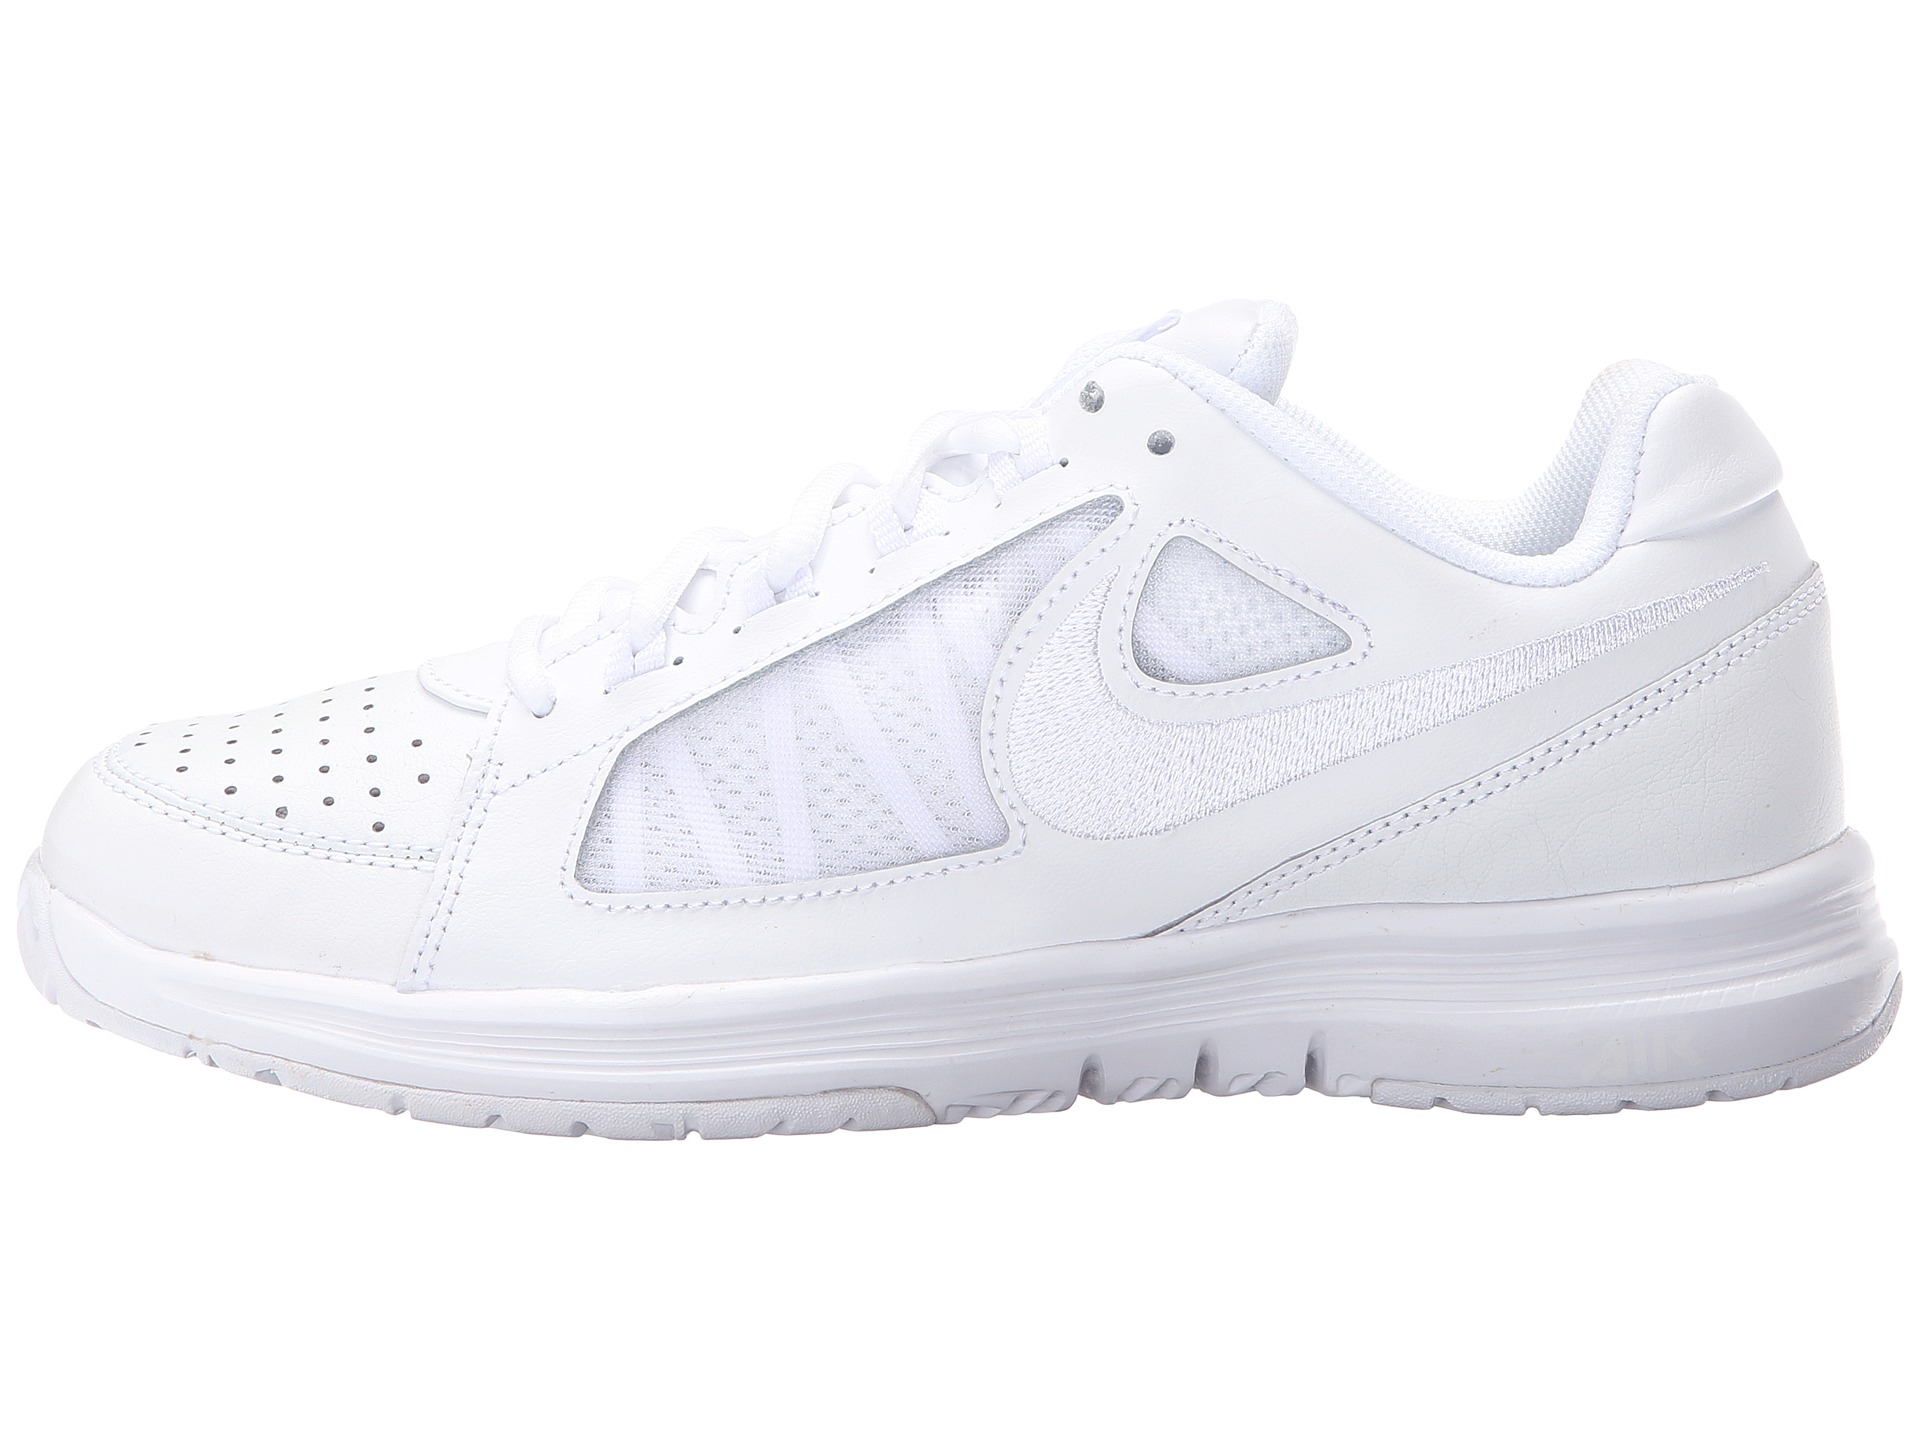 Nike Air Vapor Ace Men S Tennis Shoes Weight